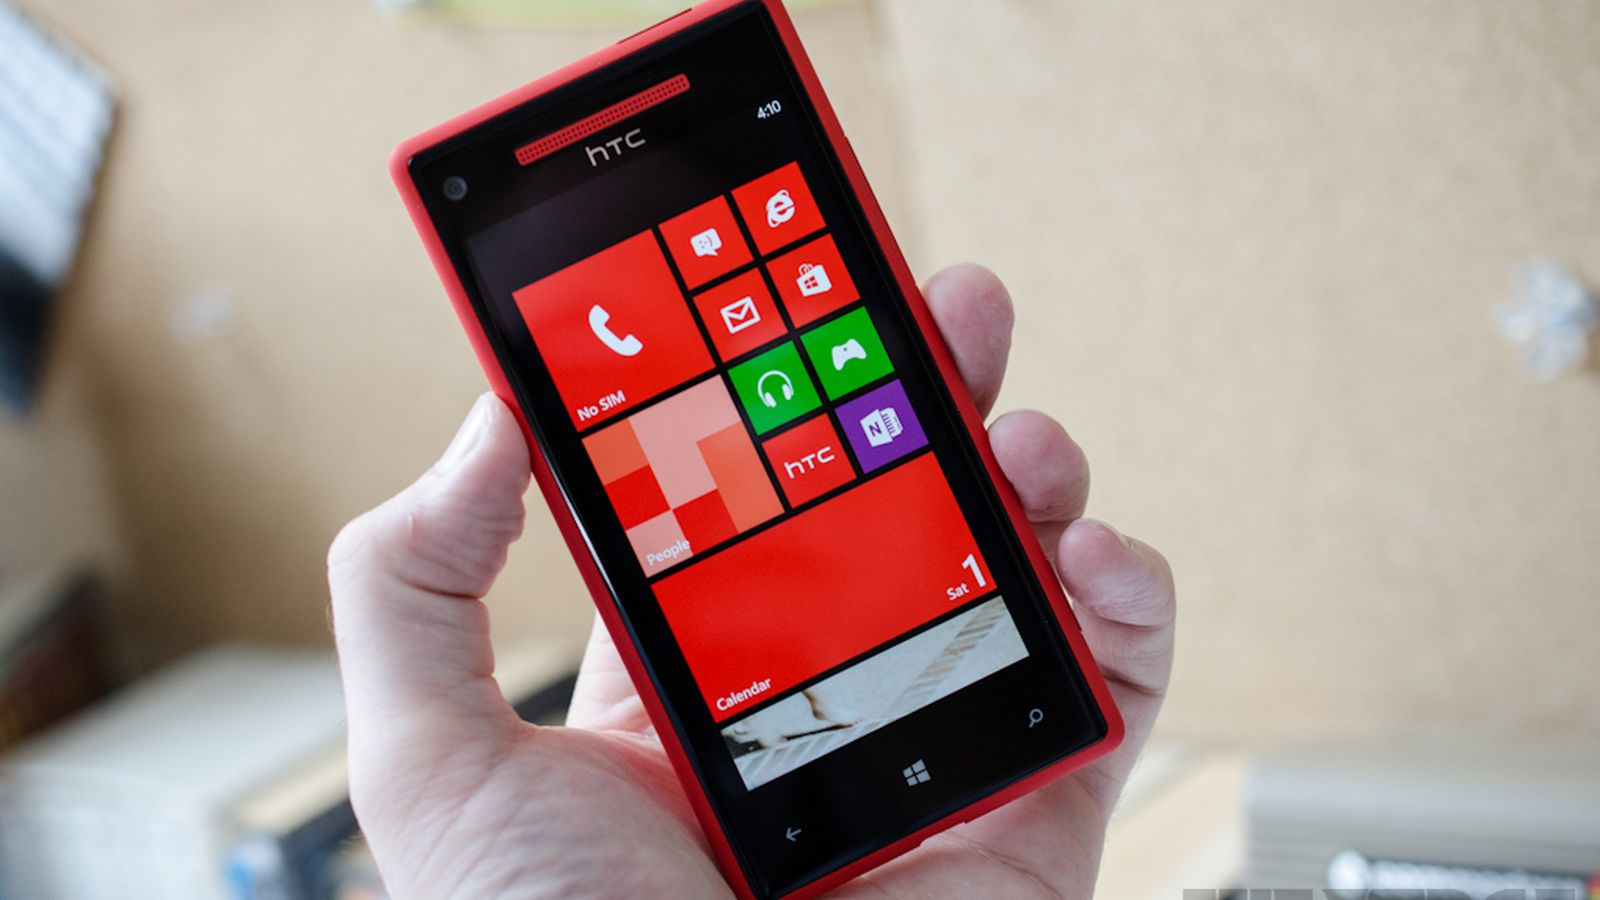 Windows Phone 8s / 8 x: Htc Tiles With Microsoft